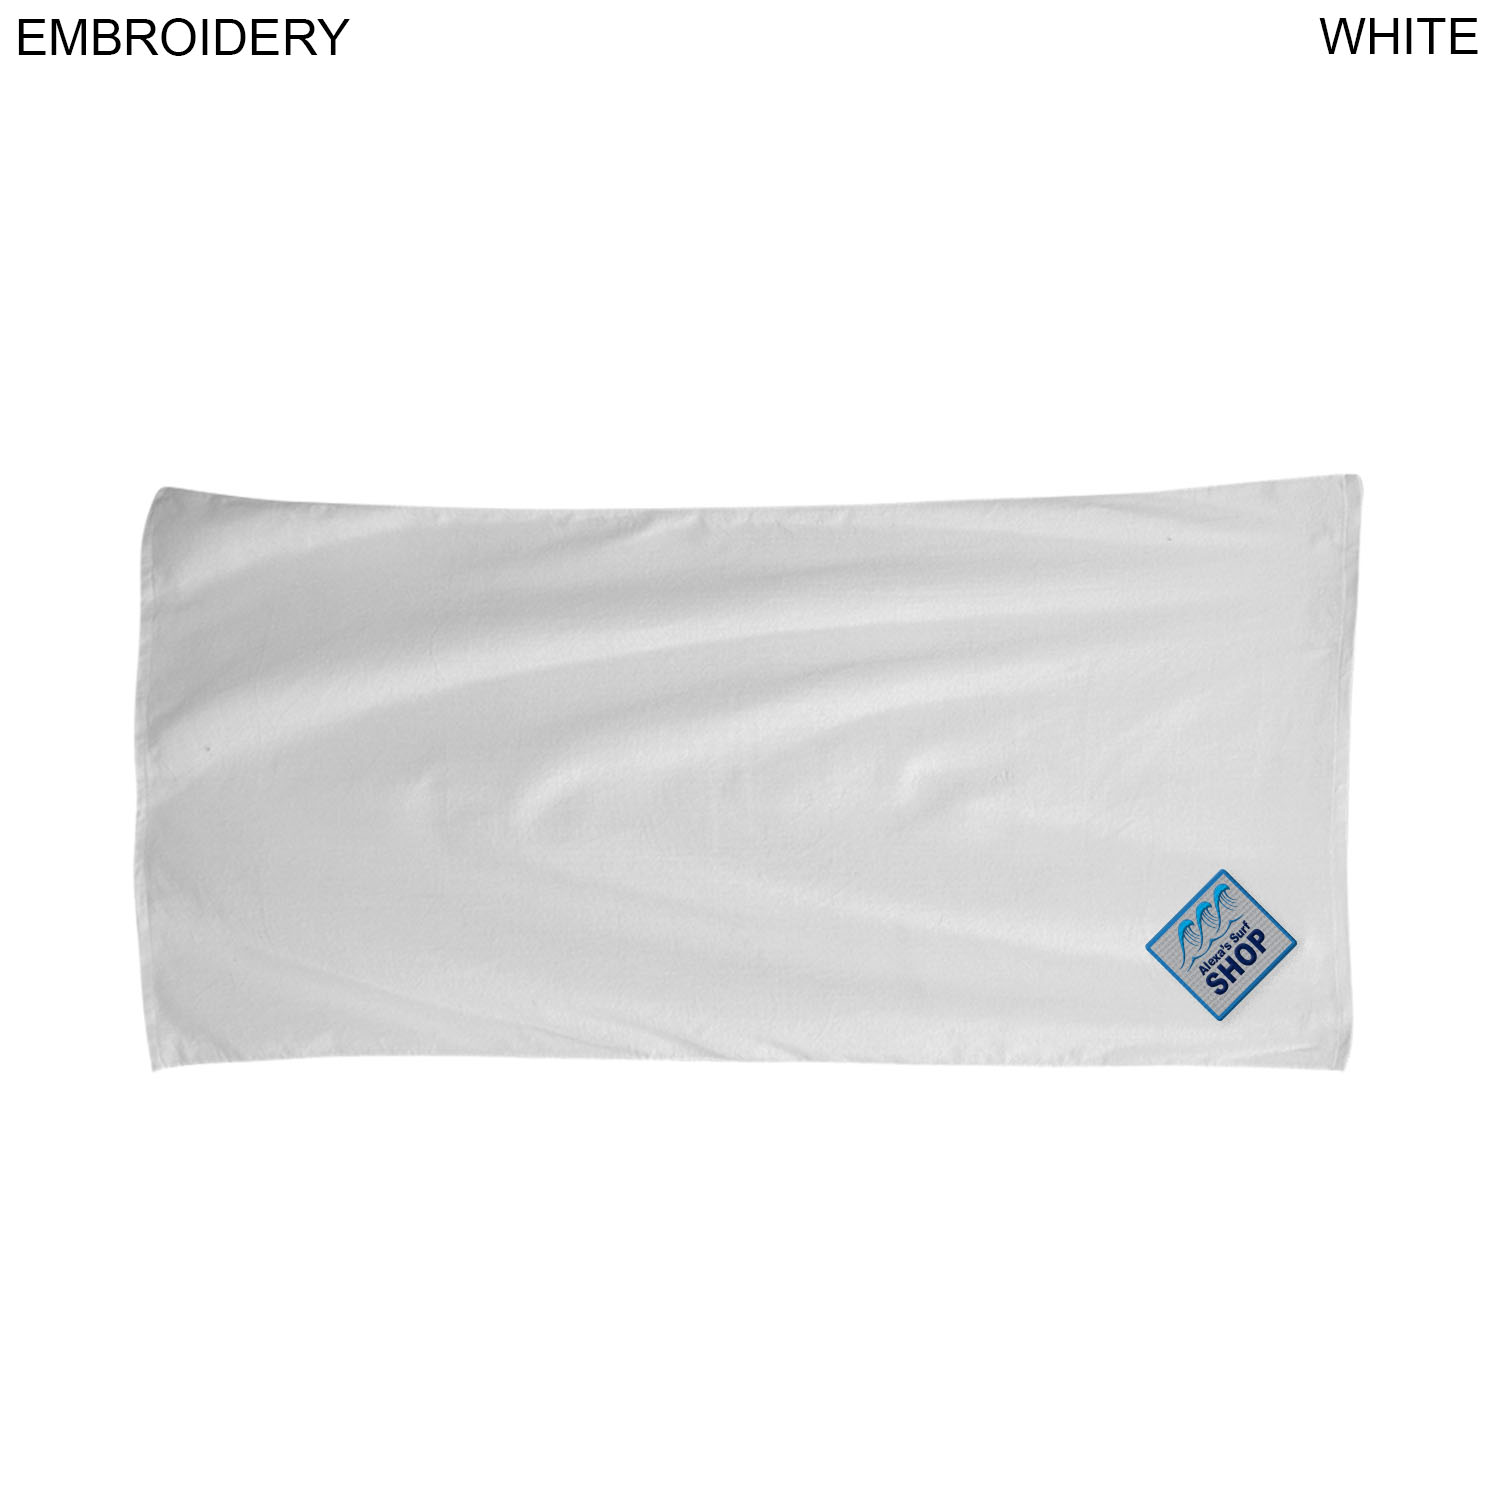 Terry Over Sized White Beach Towel, 34x70, #EM522, Embroidered